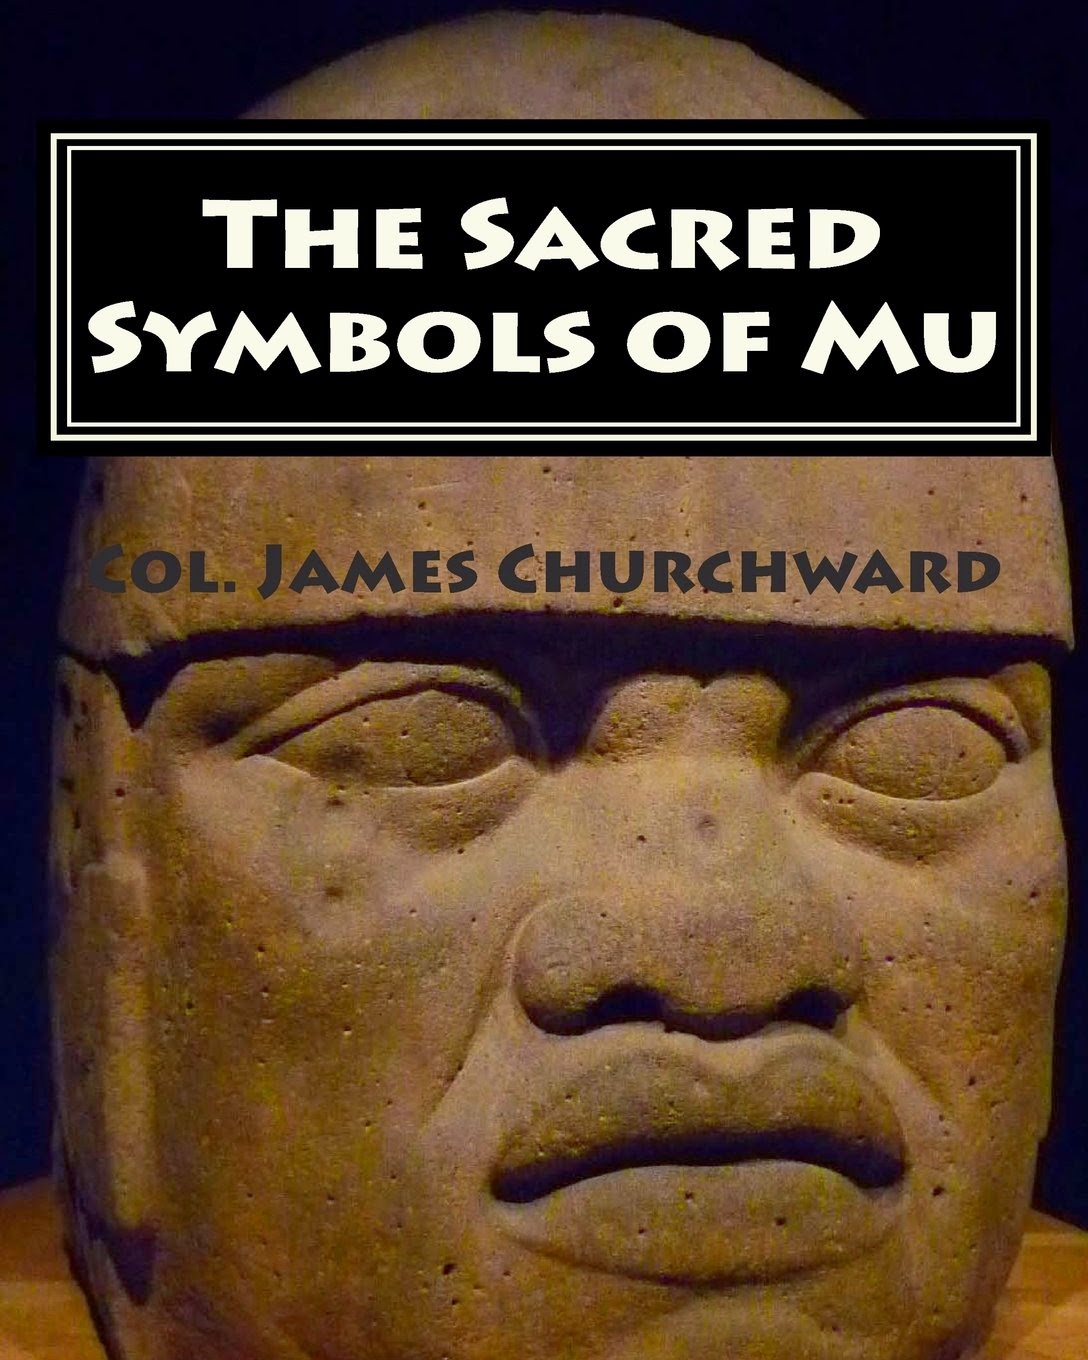 Los Símbolos Sagrados de MU por James Churchward